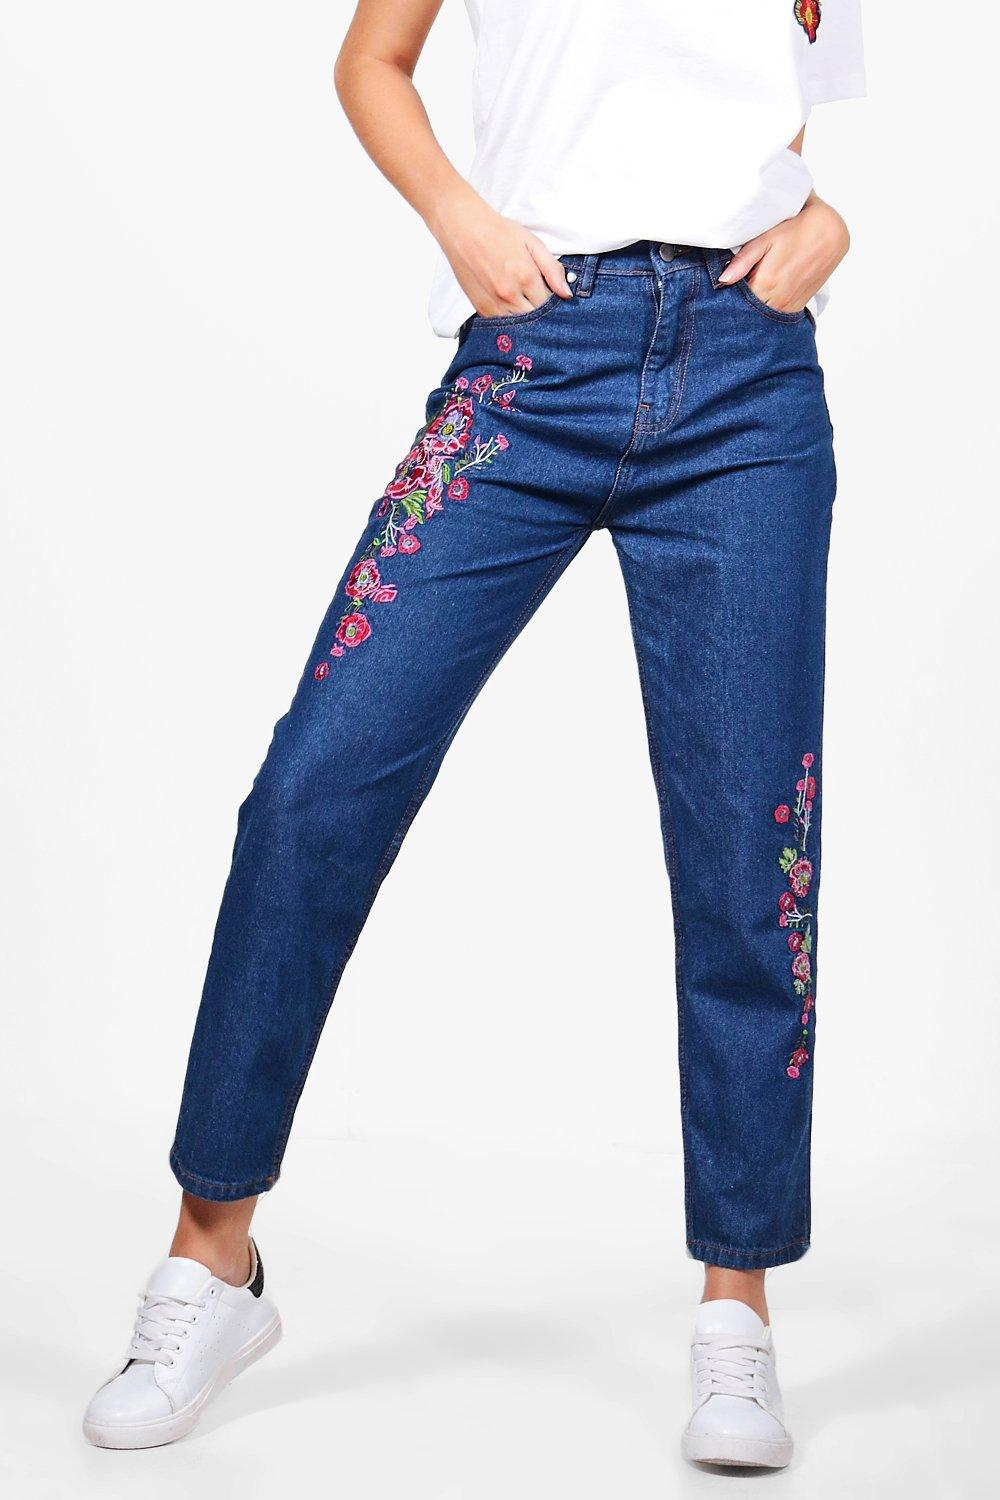 Beth floral embroidered jeans at boohoo